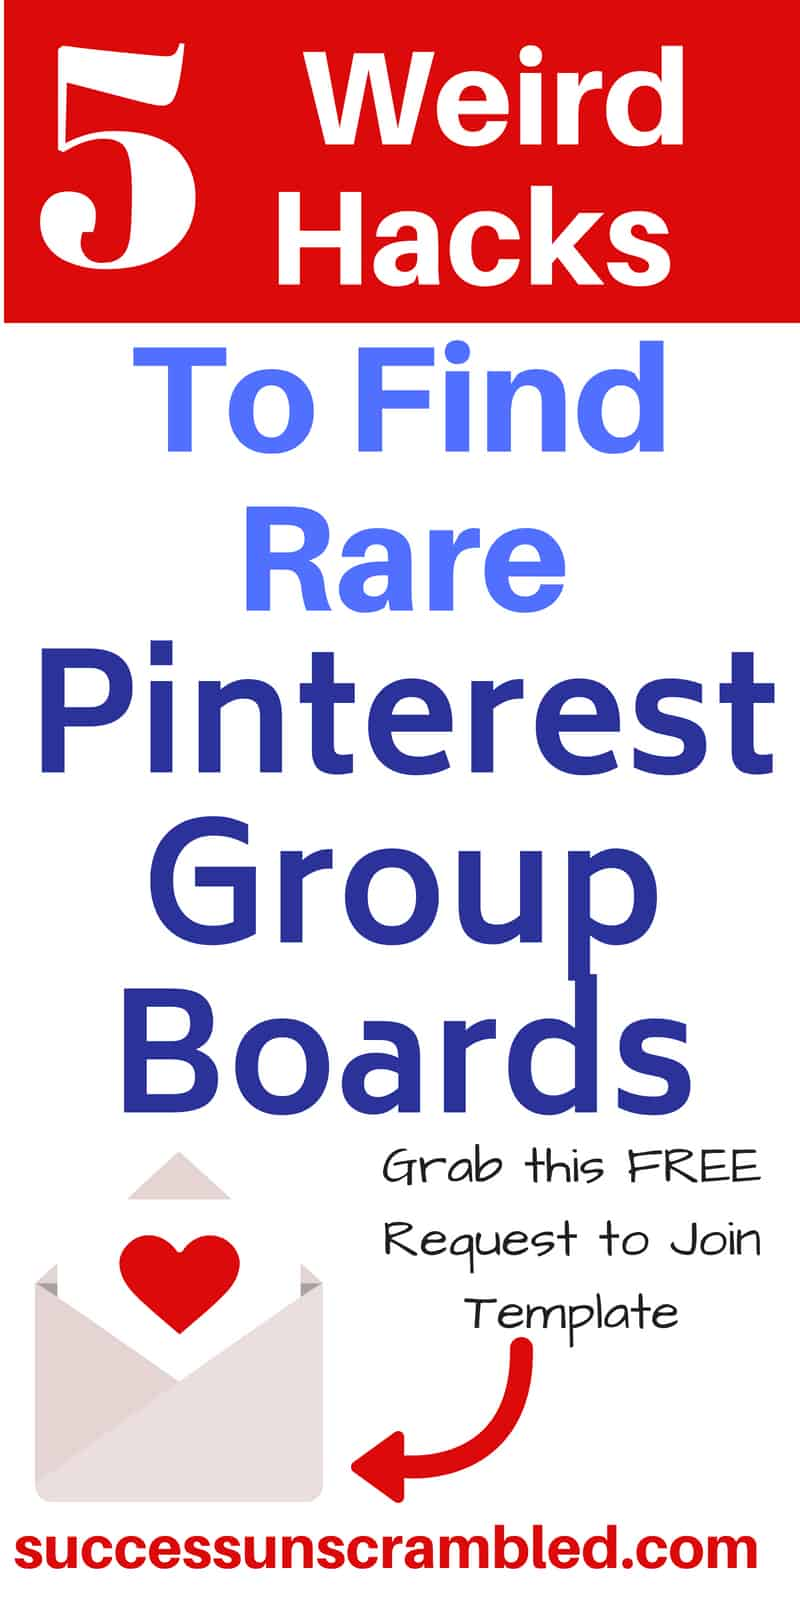 5 Weird Hacks To Find Rare Pinterest Group Boards